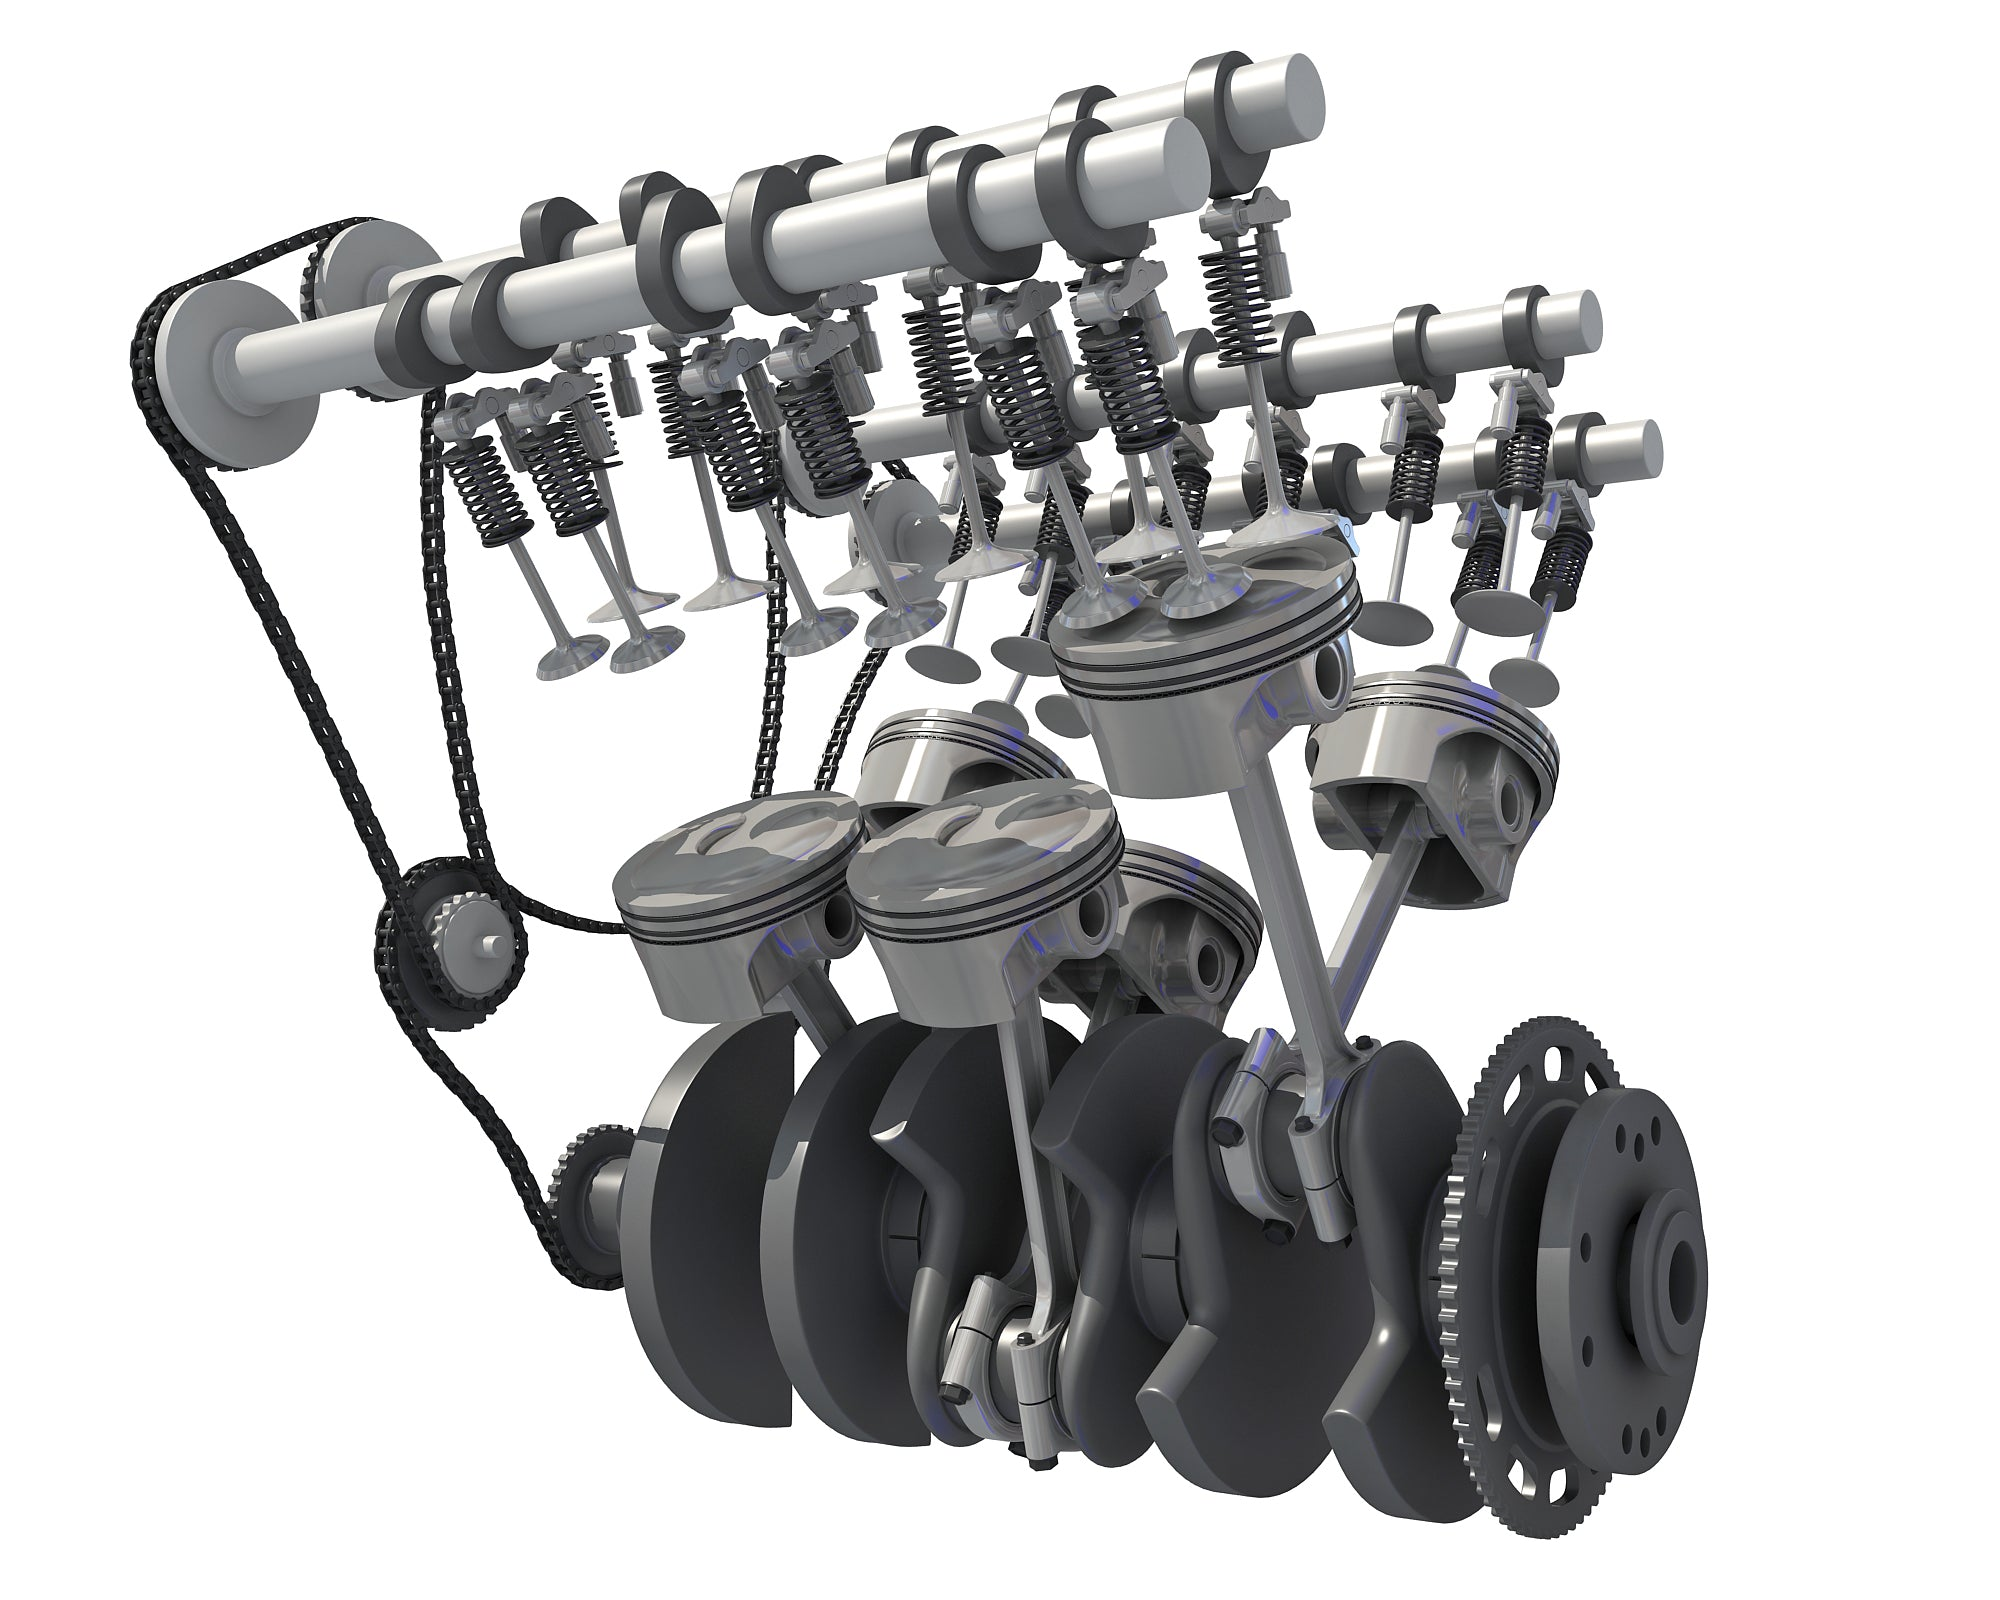 Inside Engine - 3D Models